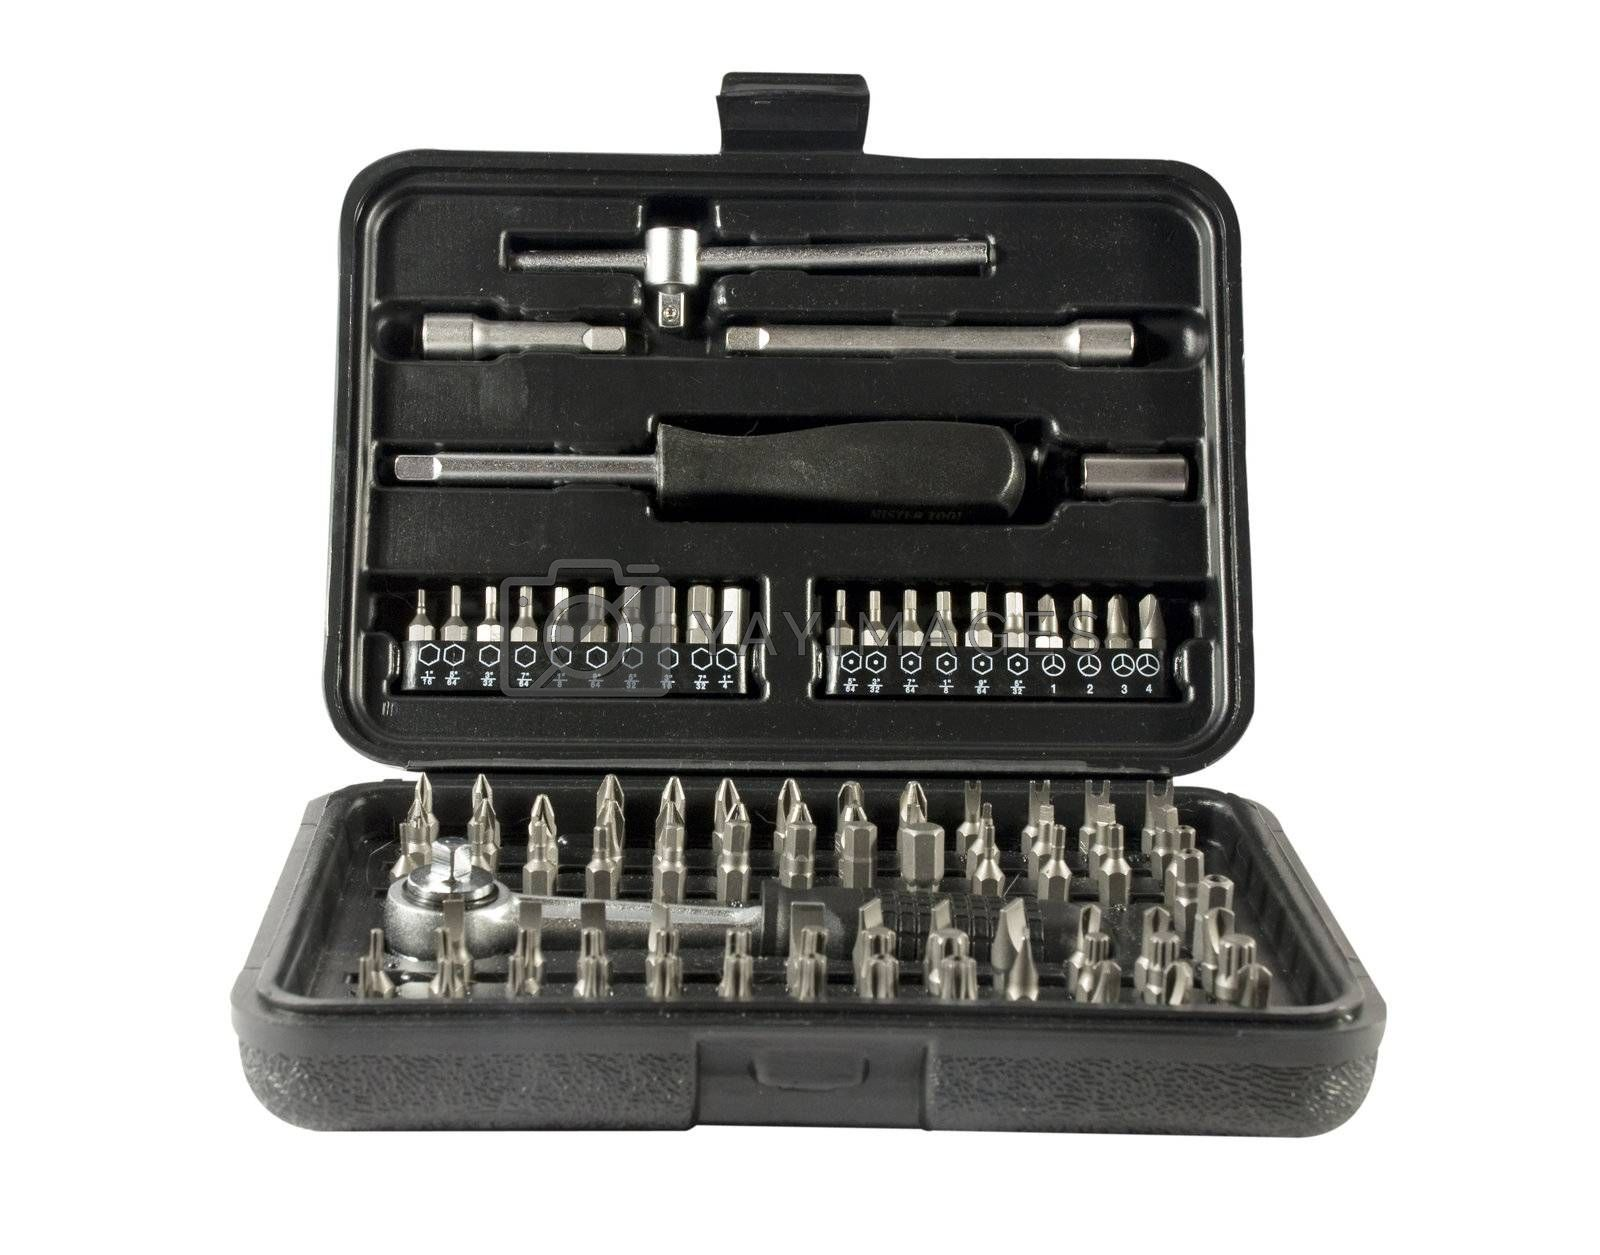 toolbox with different kinds of screwdrivers and other tool kits